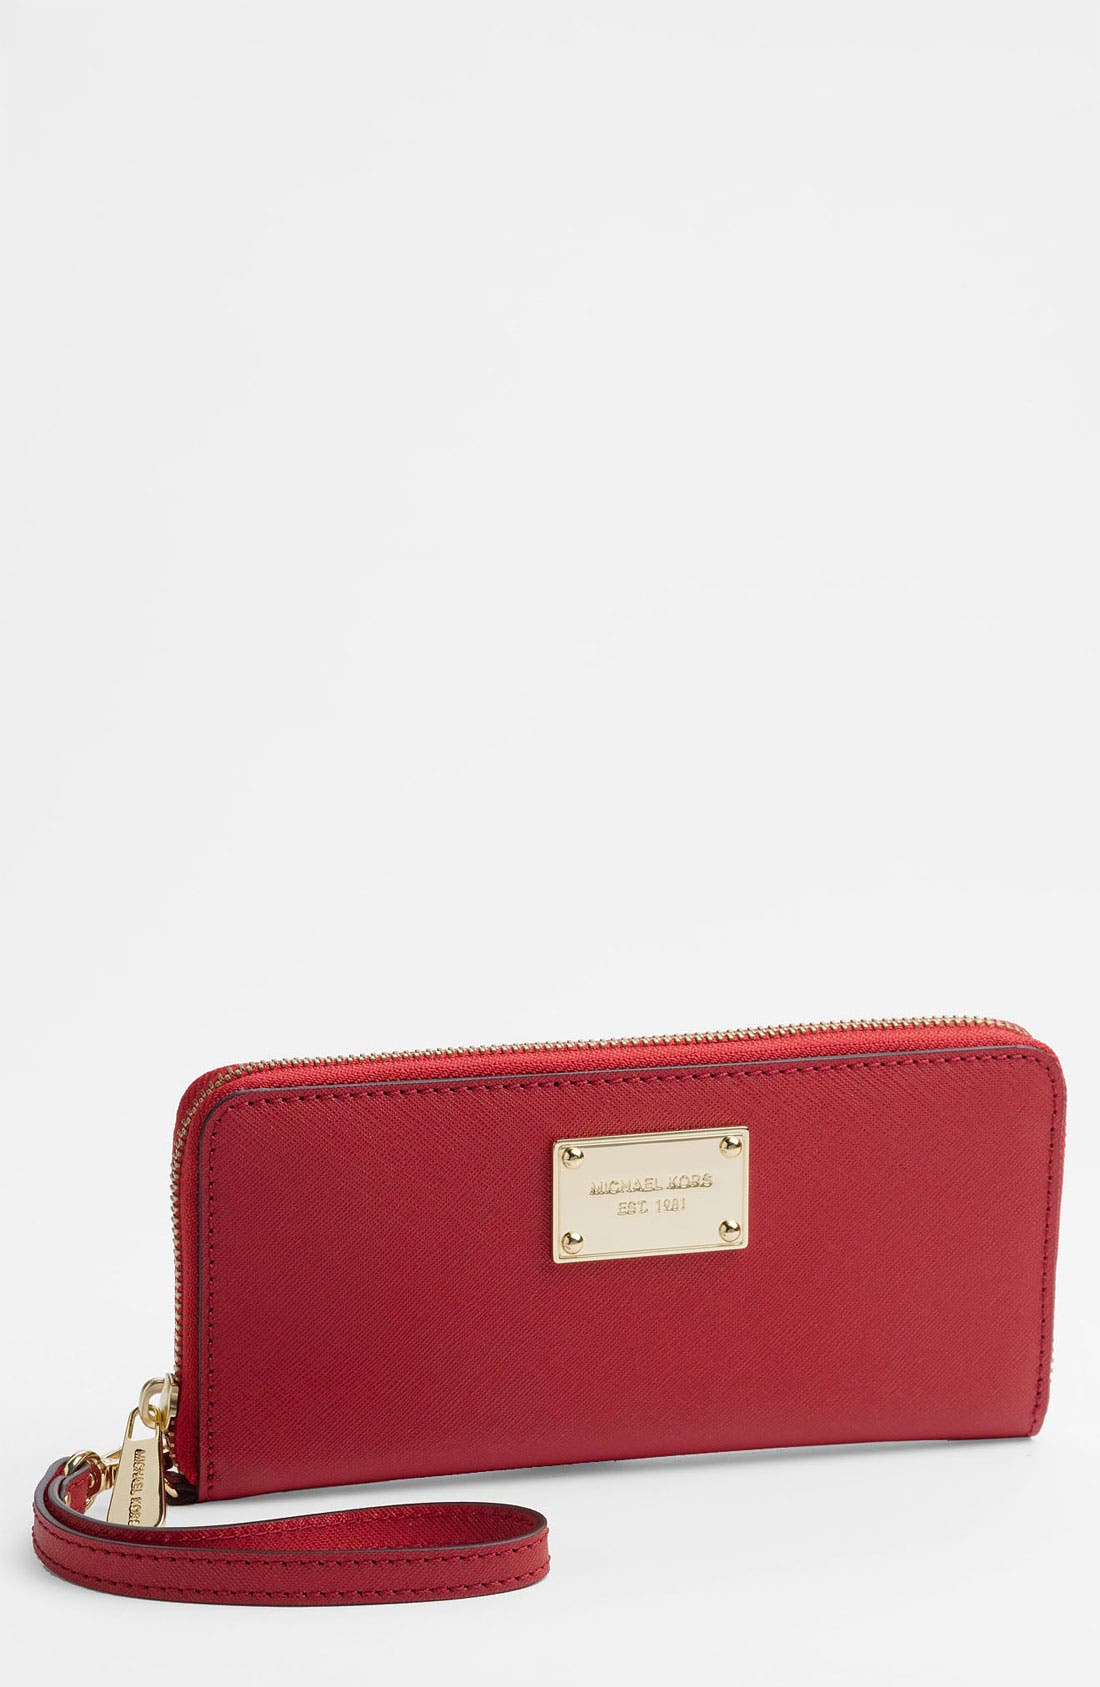 Alternate Image 1 Selected - MICHAEL Michael Kors 'Jet Set' Continental Phone Wallet